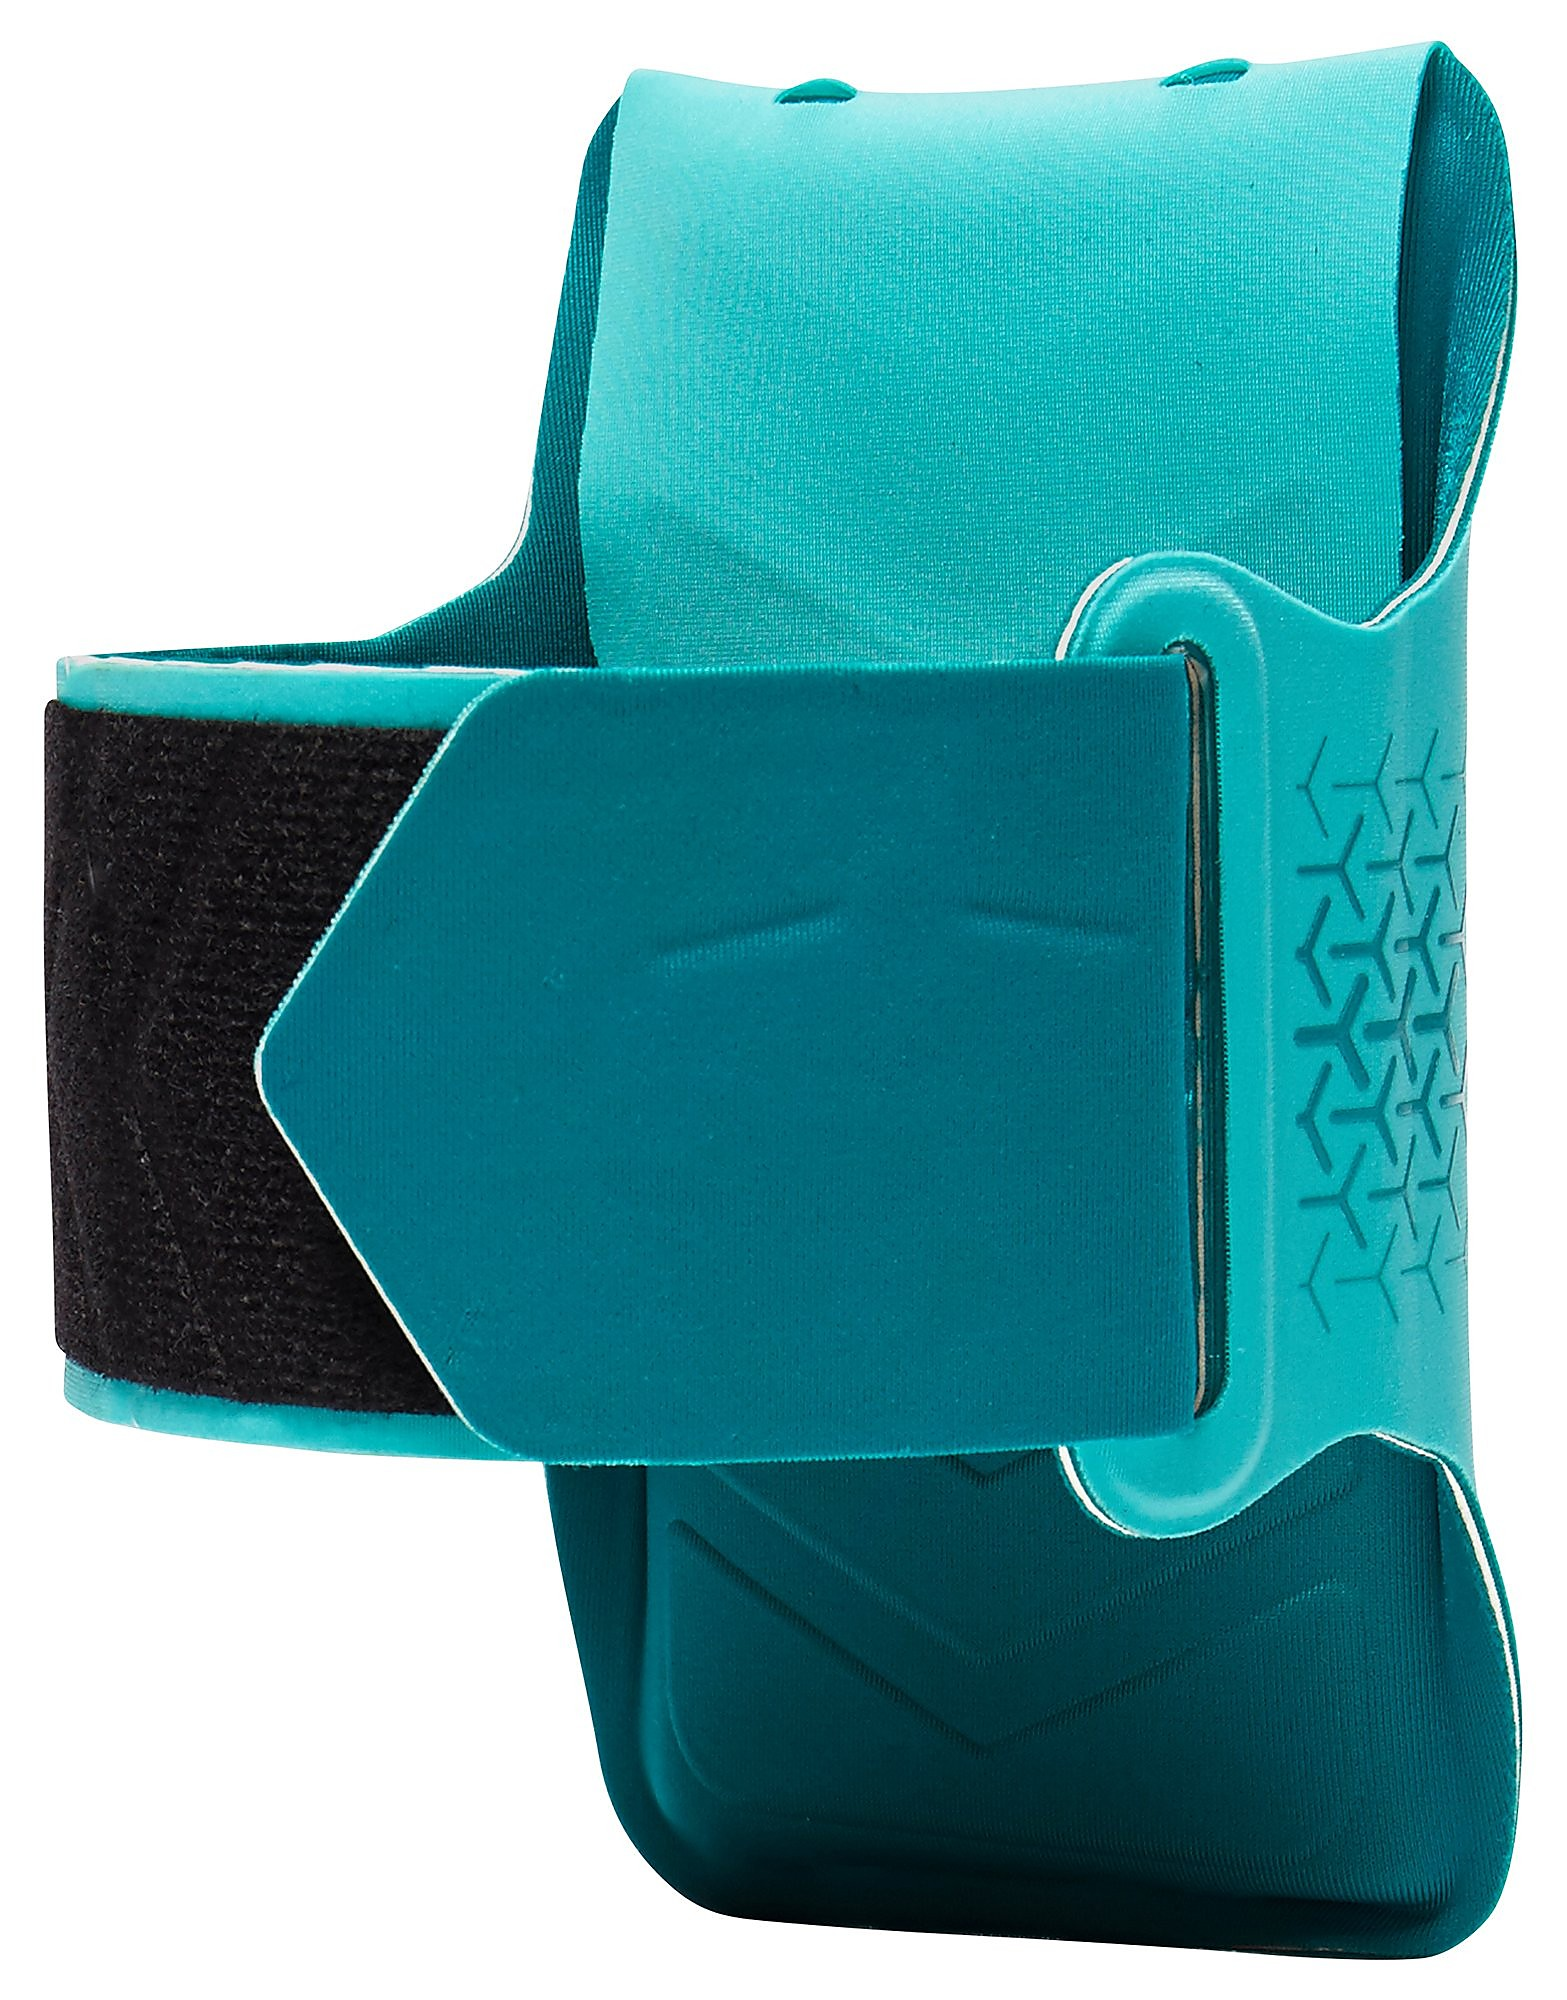 Nike Challenger Arm Band Women's